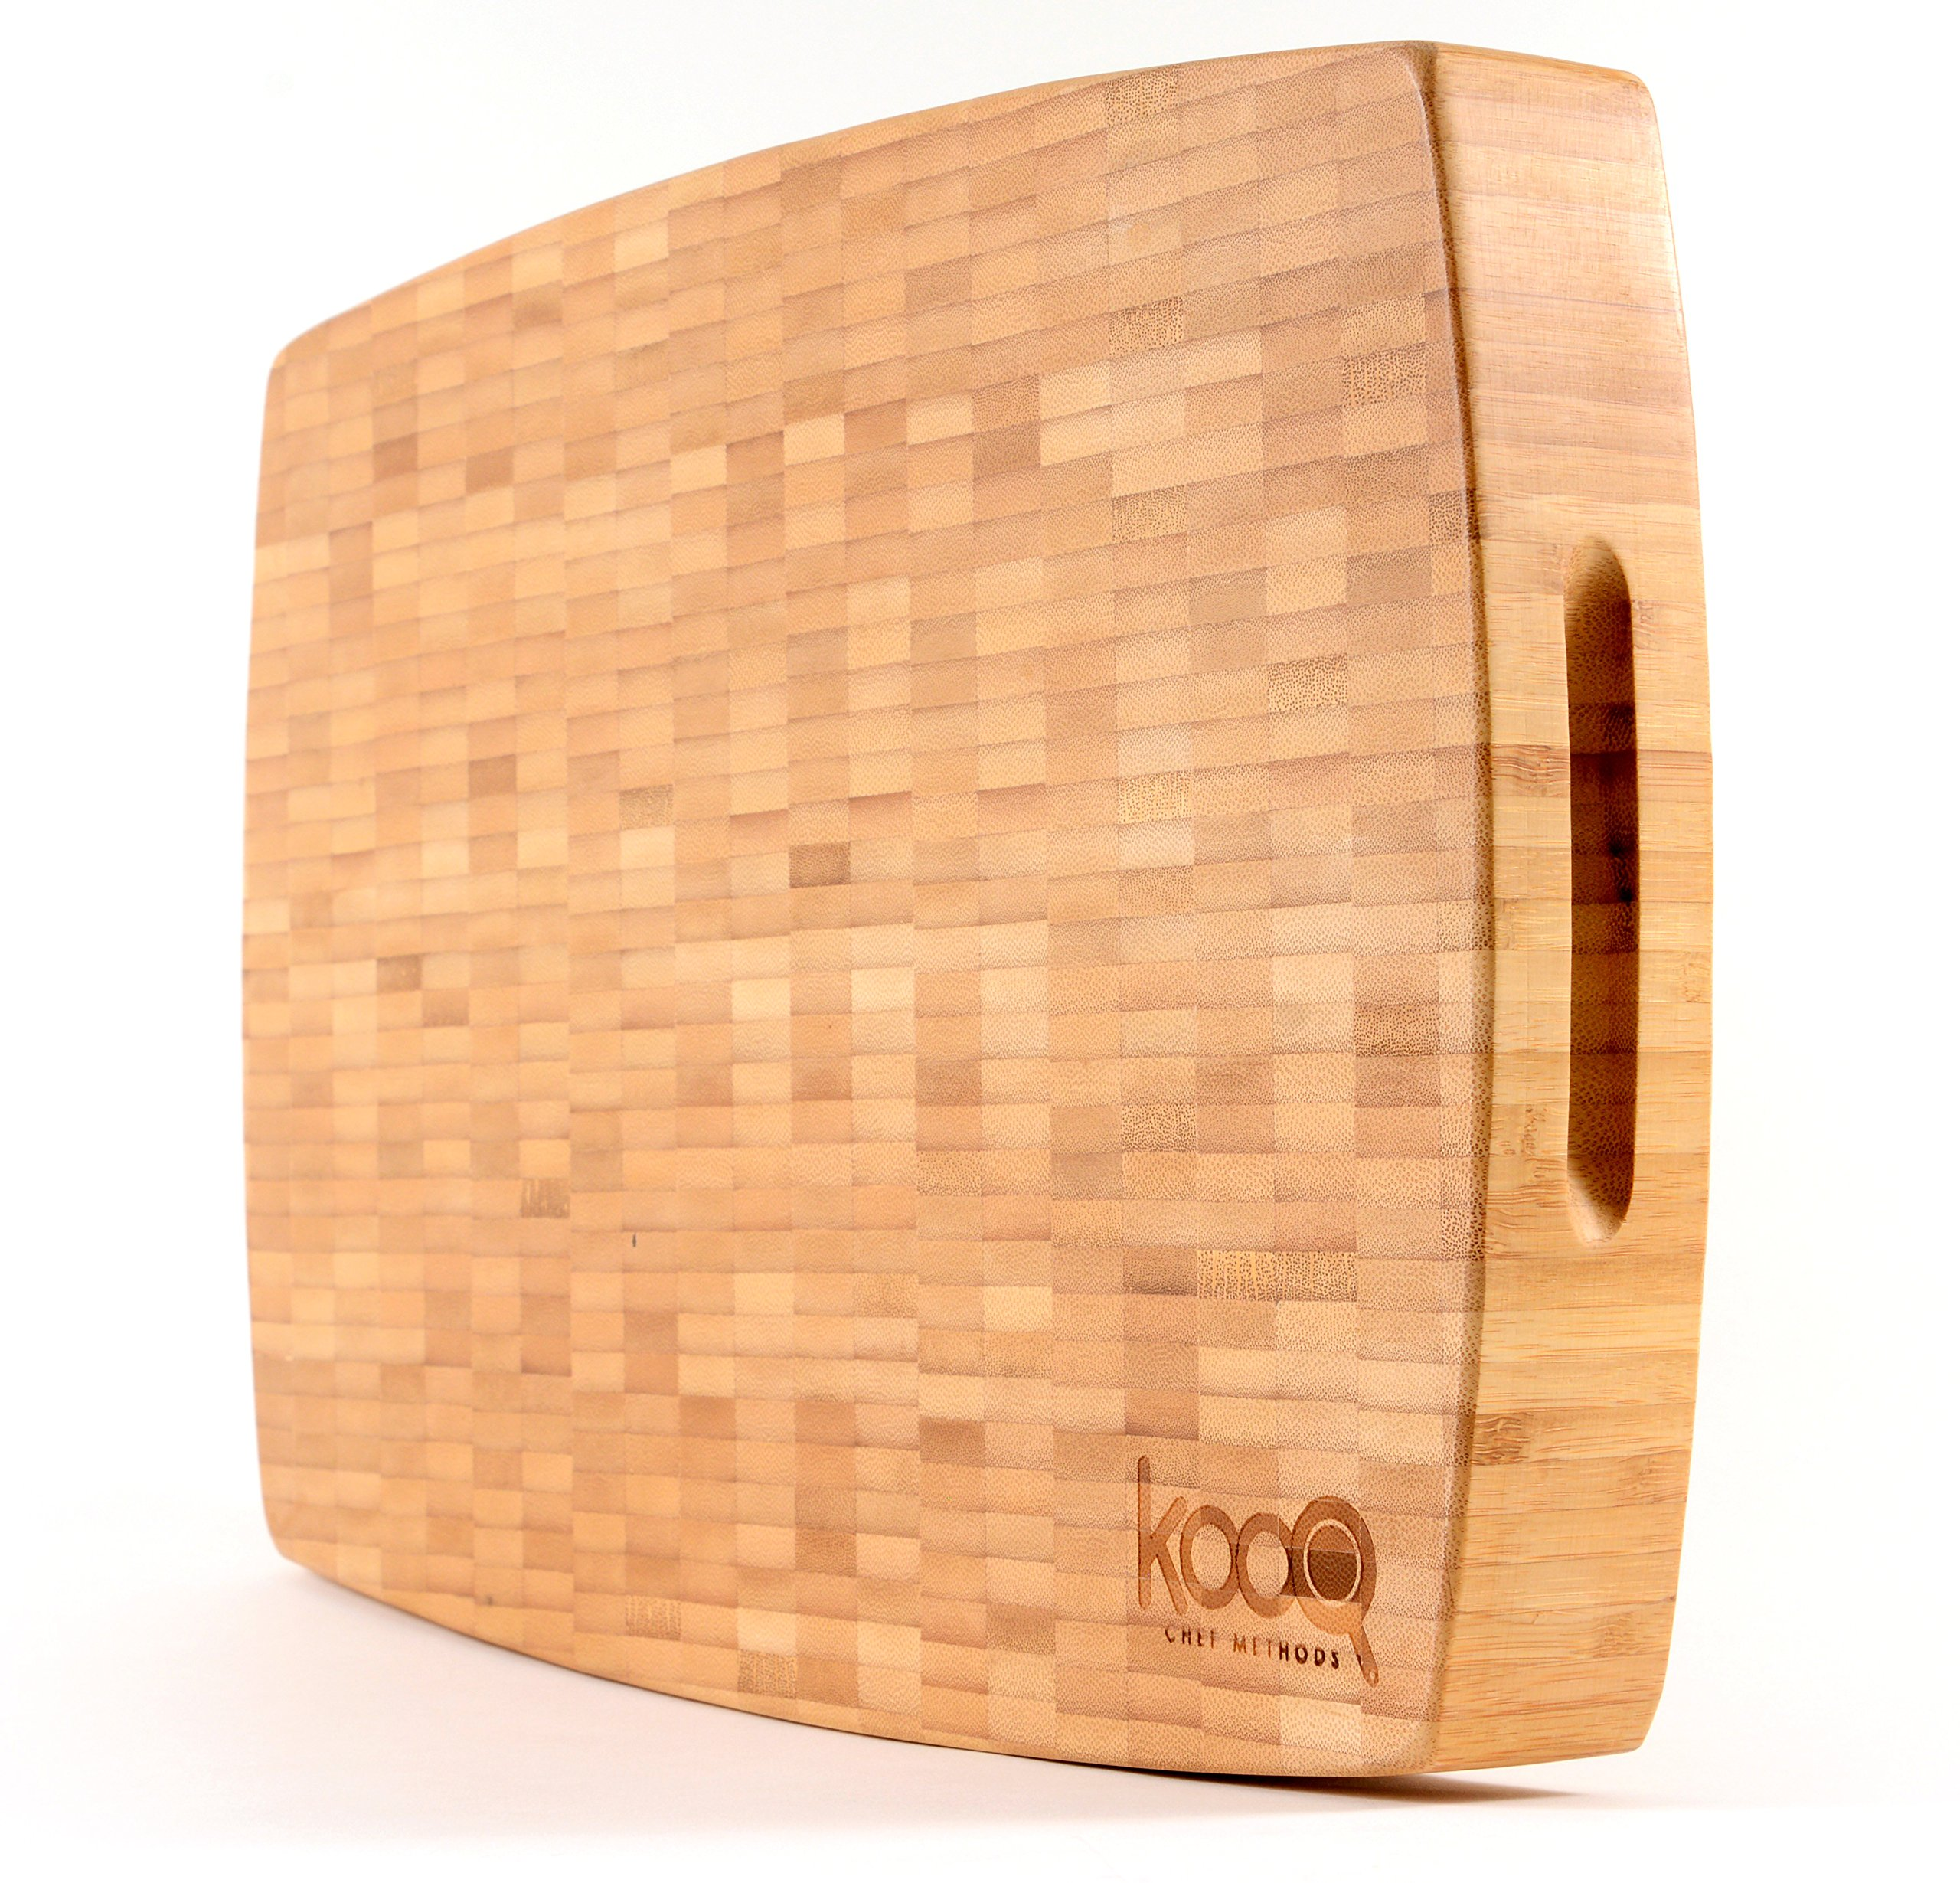 HIGH-END Extra Large Bamboo Cutting Board with Feet by KOOQ - THE MOST SOPHISTICATED, THICK Chopping and Butcher's Block, Beautiful Cheese Board, perfect as Serving Board too! - (18'' x 12'' inches)